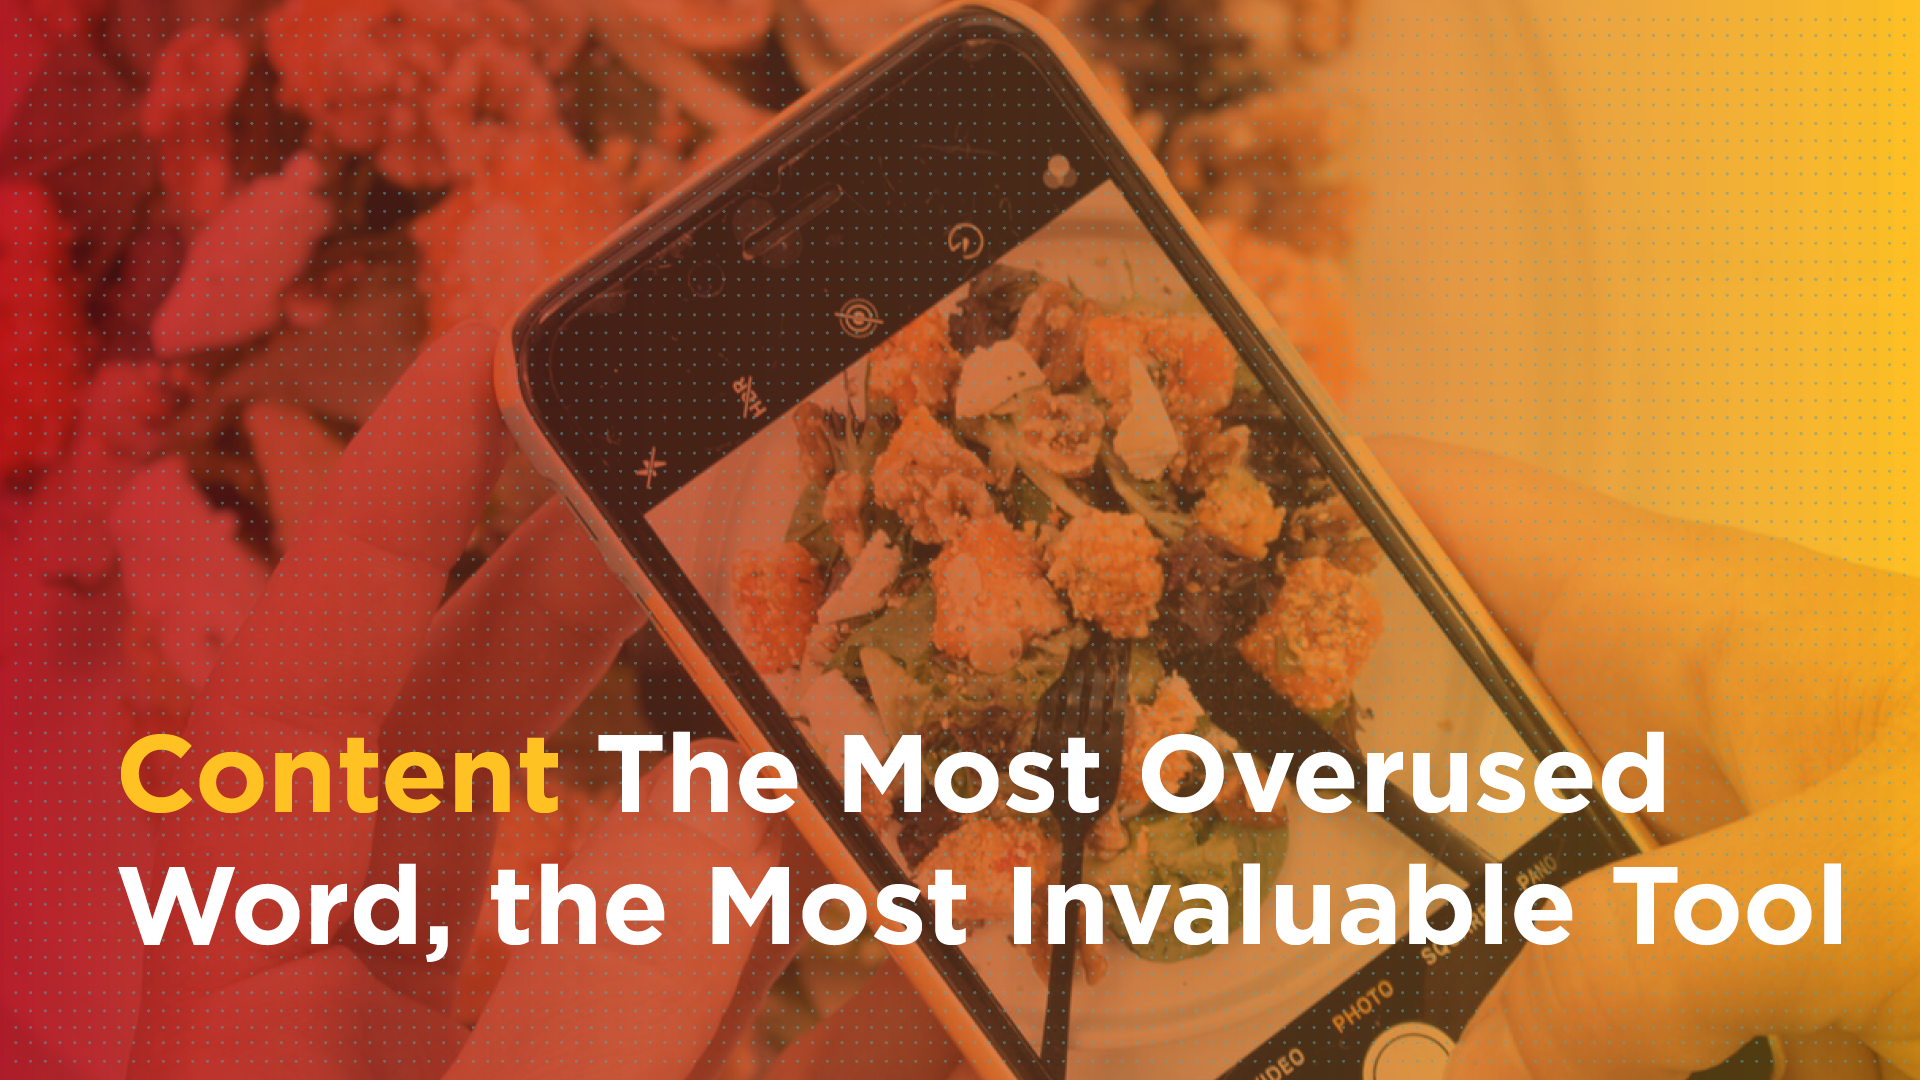 Content: The Most Overused Word, the Most Invaluable Tool Featured Image